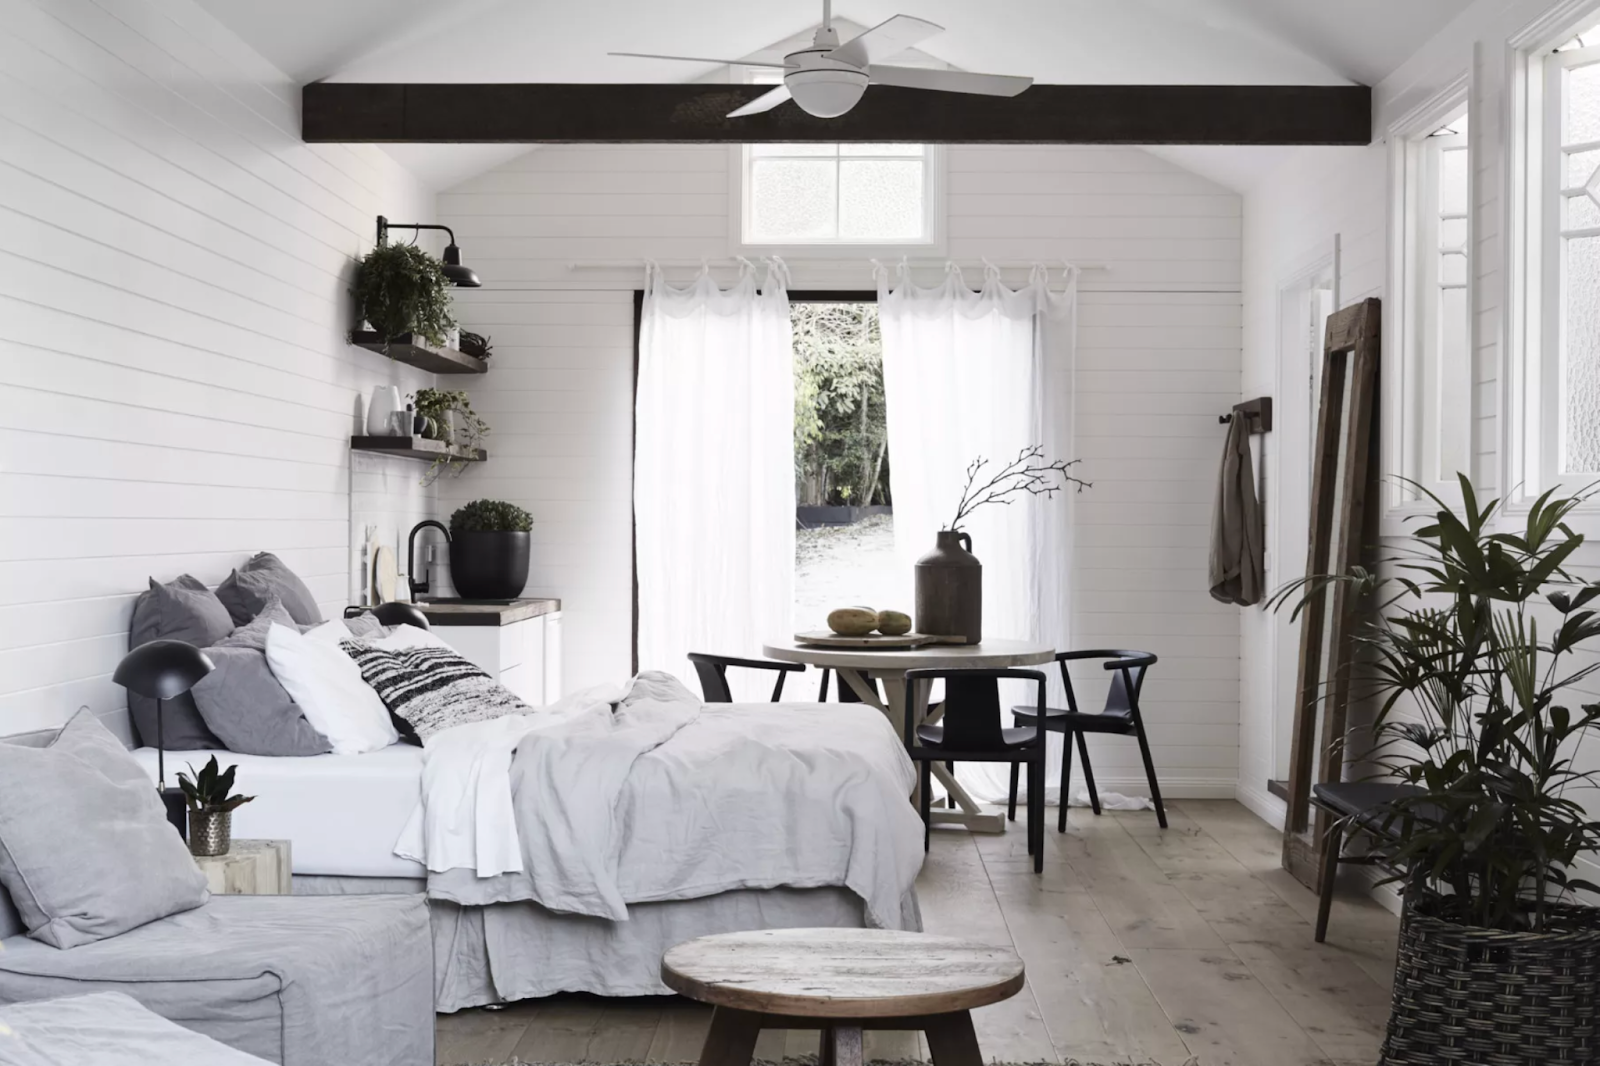 Bedroom of The Bower with a queen bed and black and white furnishings